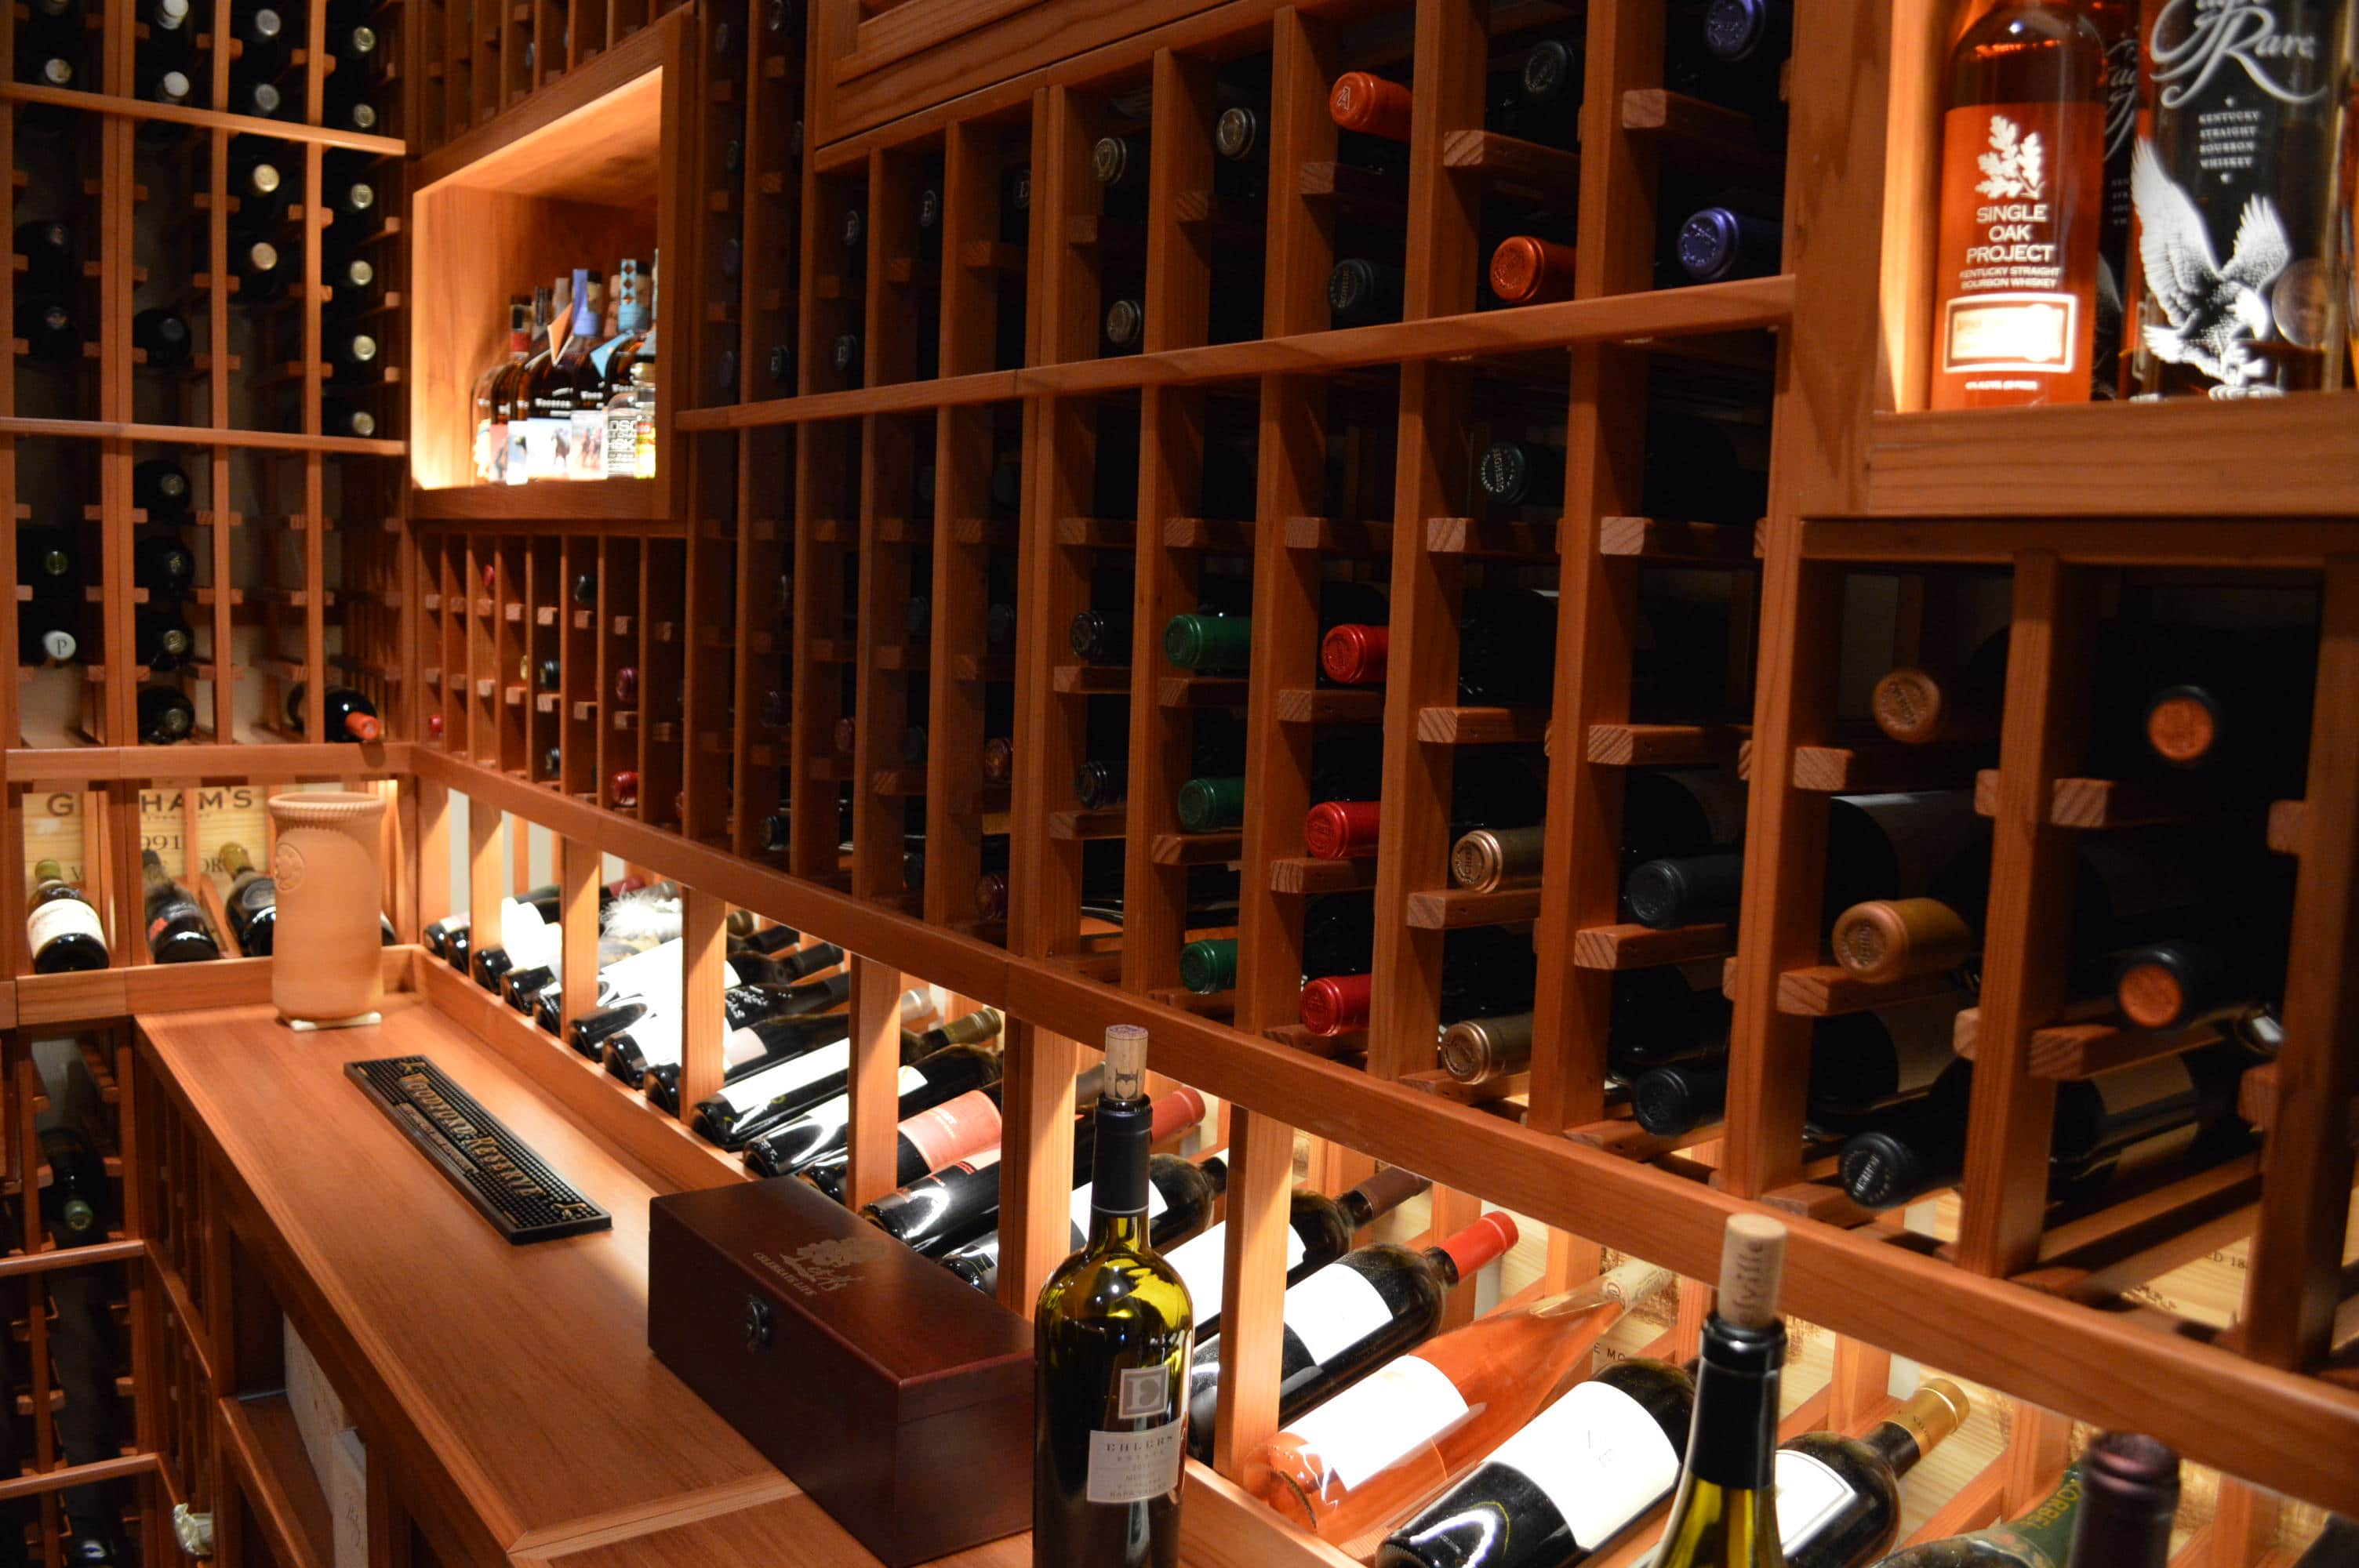 Redwood custom wine cellar built in a home in vancouver custom wine cellars vancouver local - Types of beautiful wine racks for your home ...